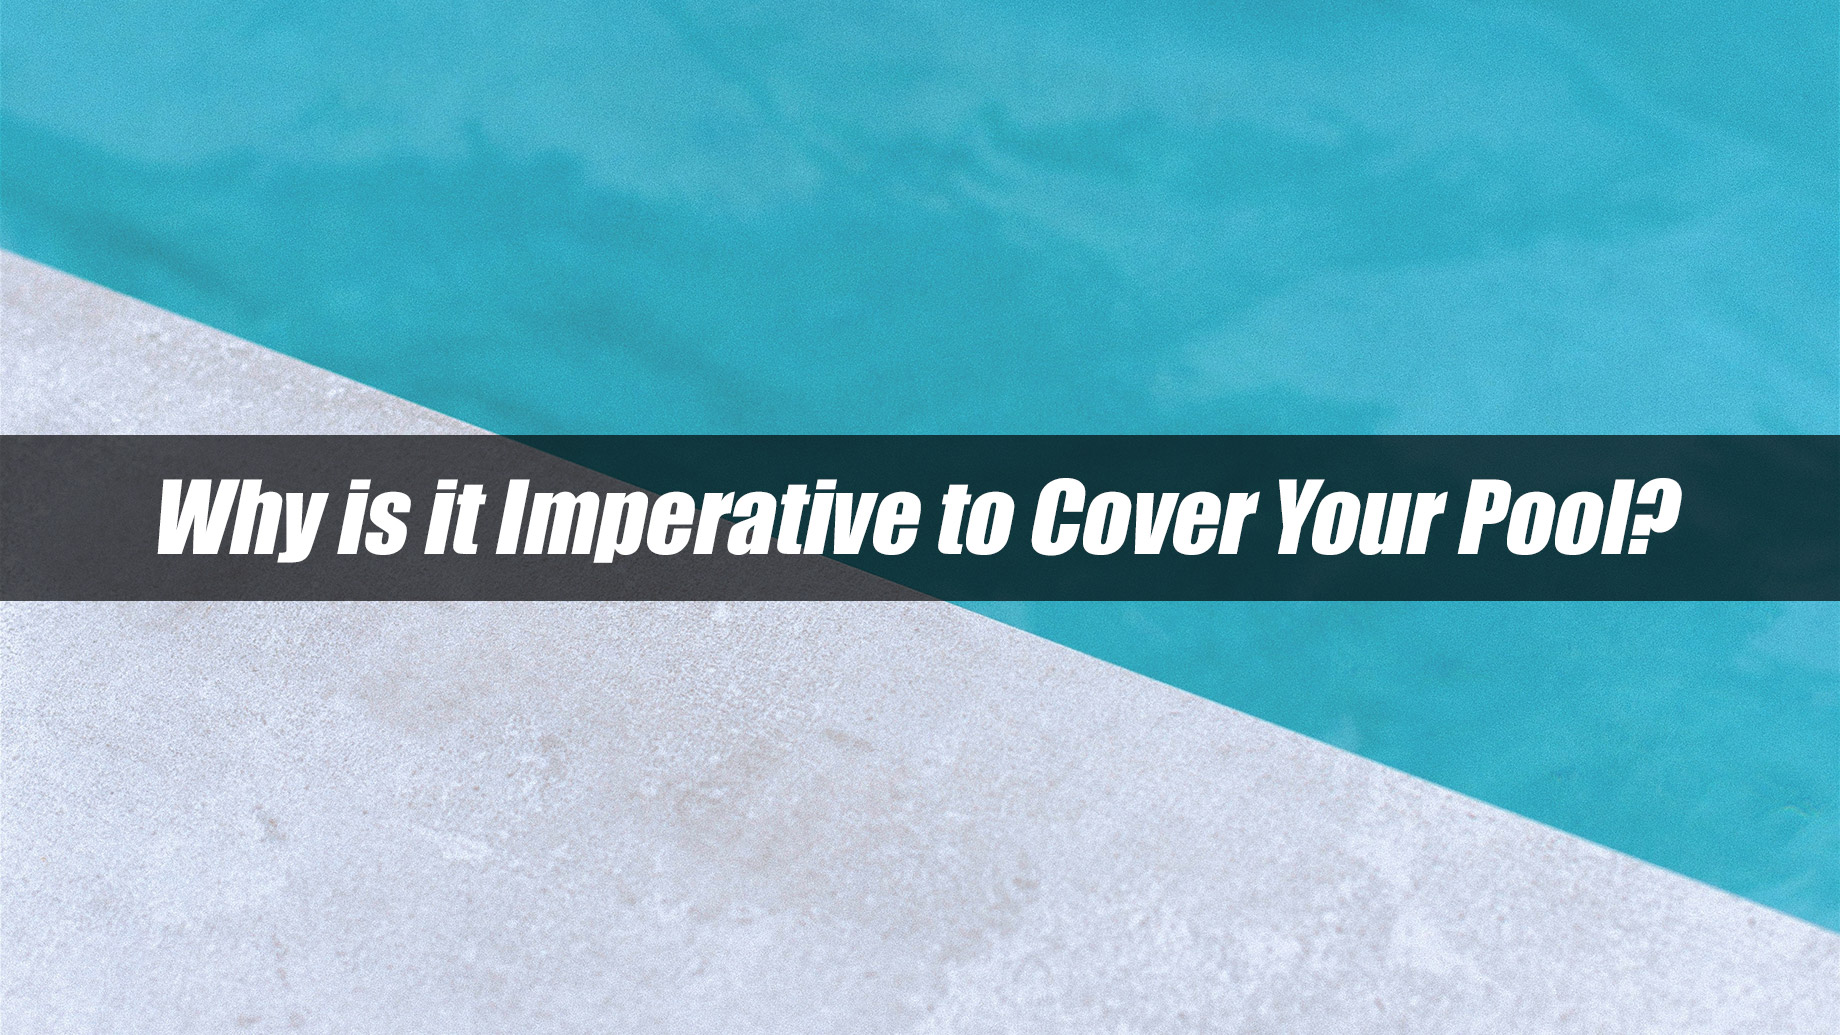 Why is it Imperative to Cover Your Pool?